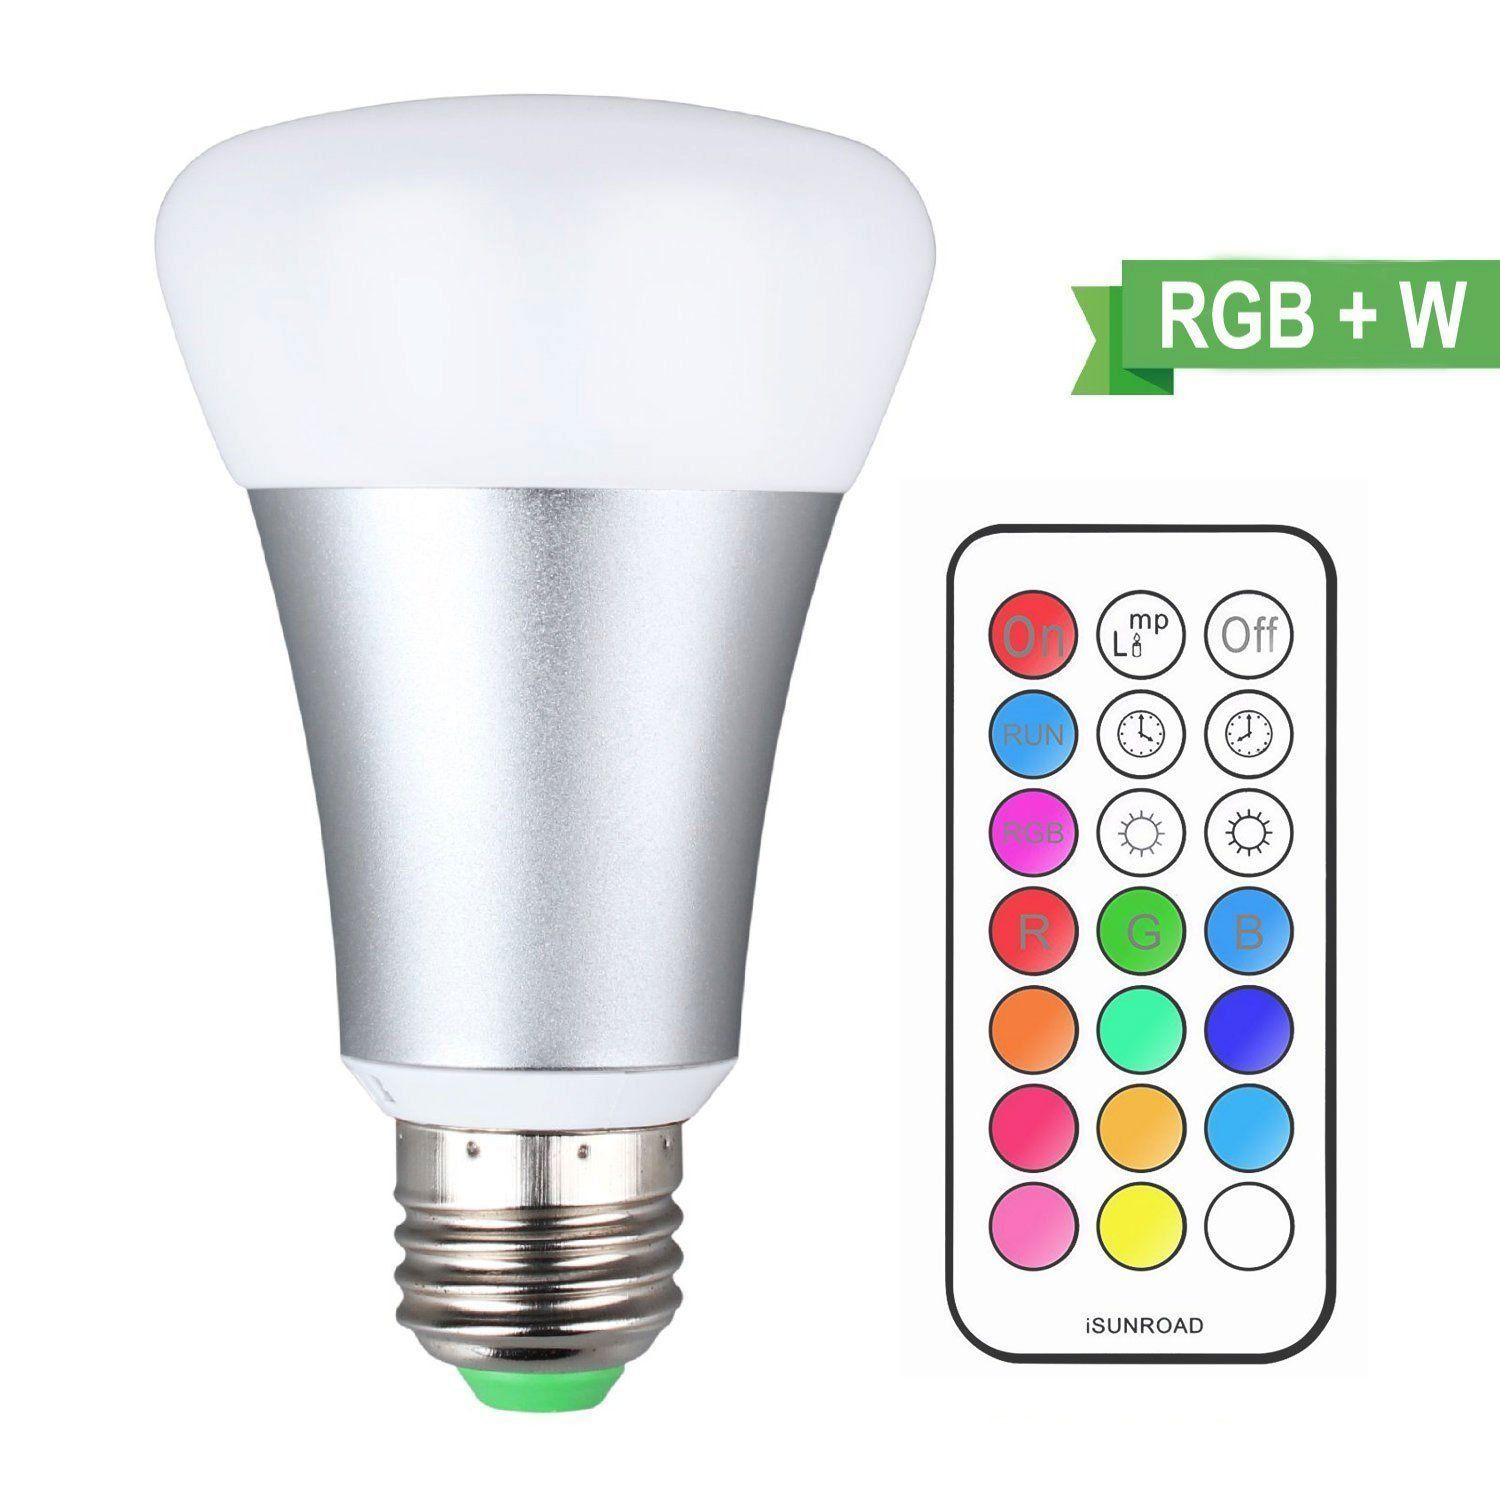 Rgbw E26 E27 10w Led Bulb With Remote Control Led Bulb Color Changing Light Bulb Light Bulb